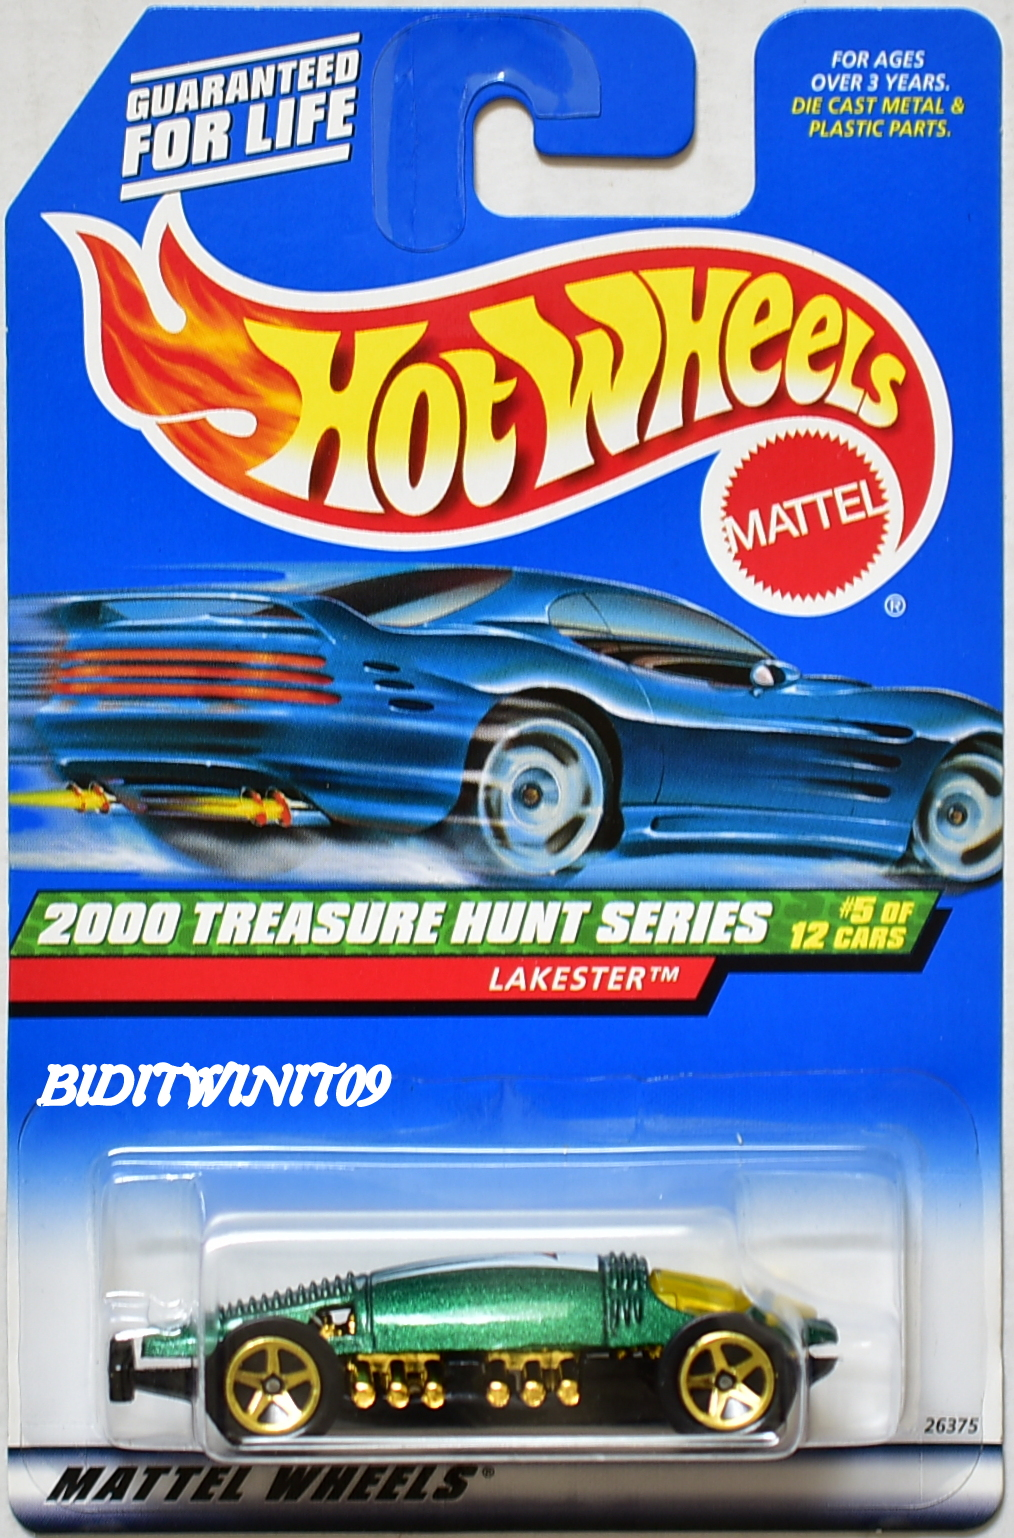 HOT WHEELS 2000 TREASURE HUNT SERIES LAKESTER #053 GREEN